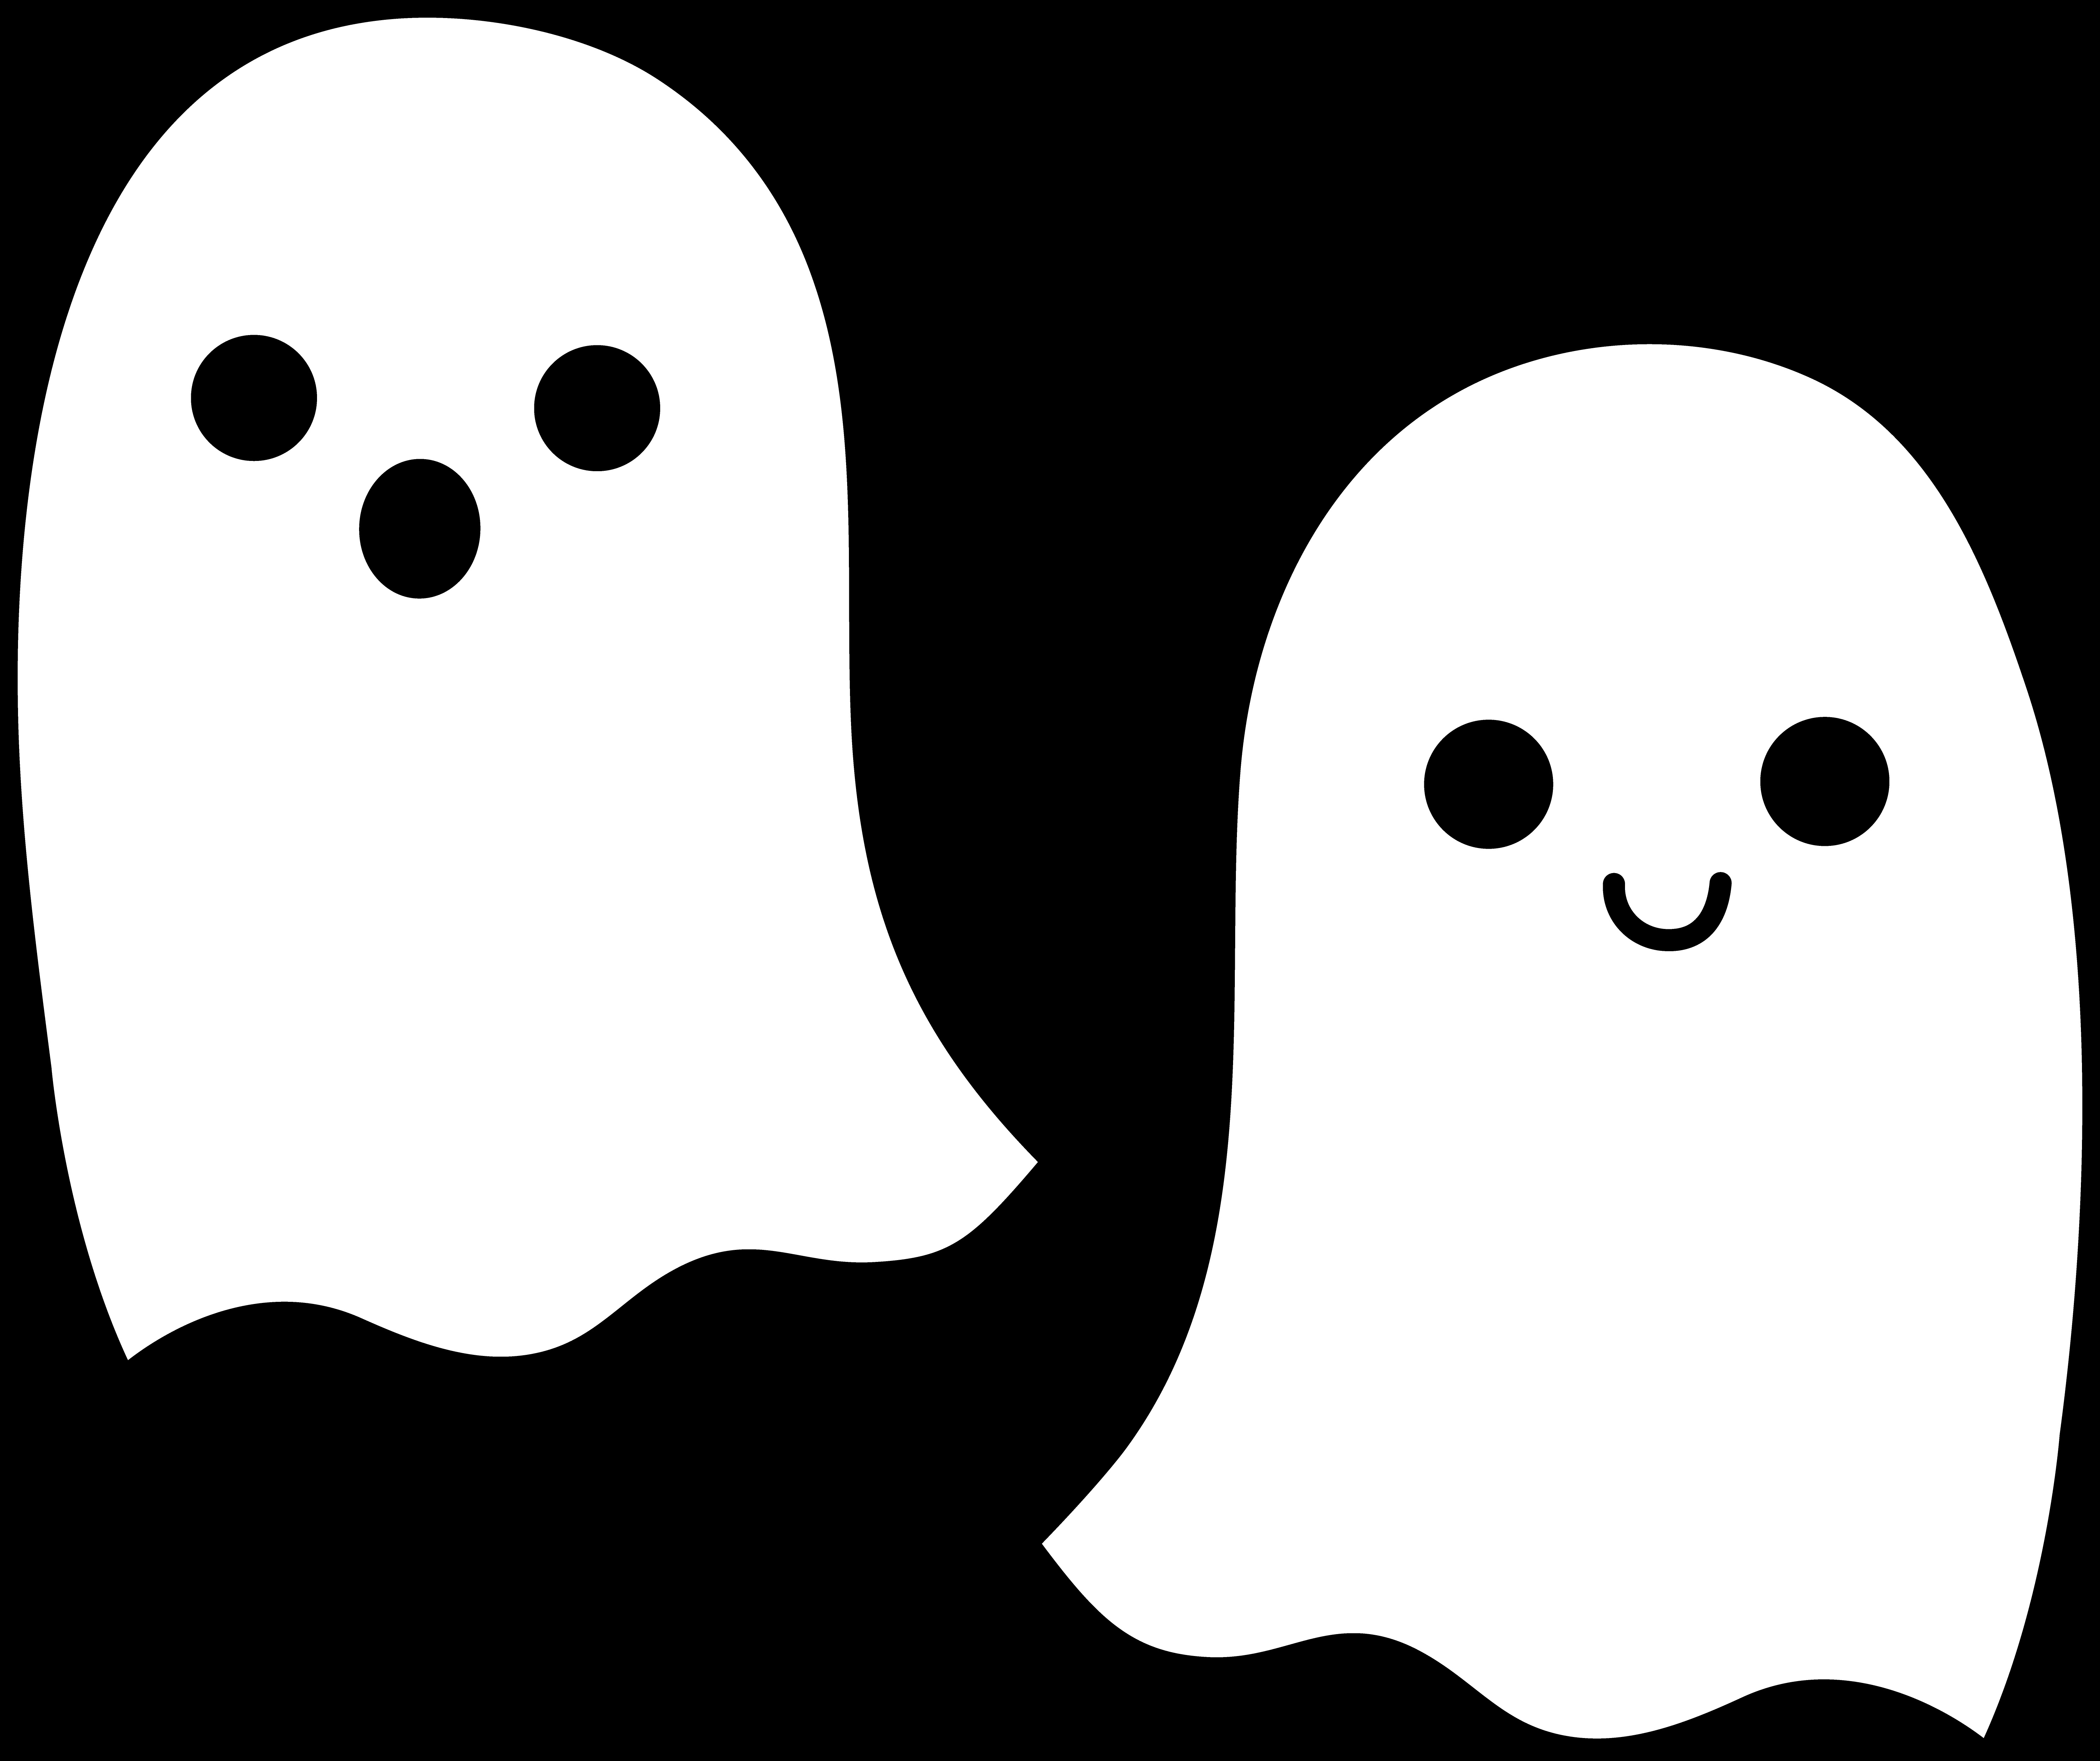 Cute bow group with. Bows clipart ghost